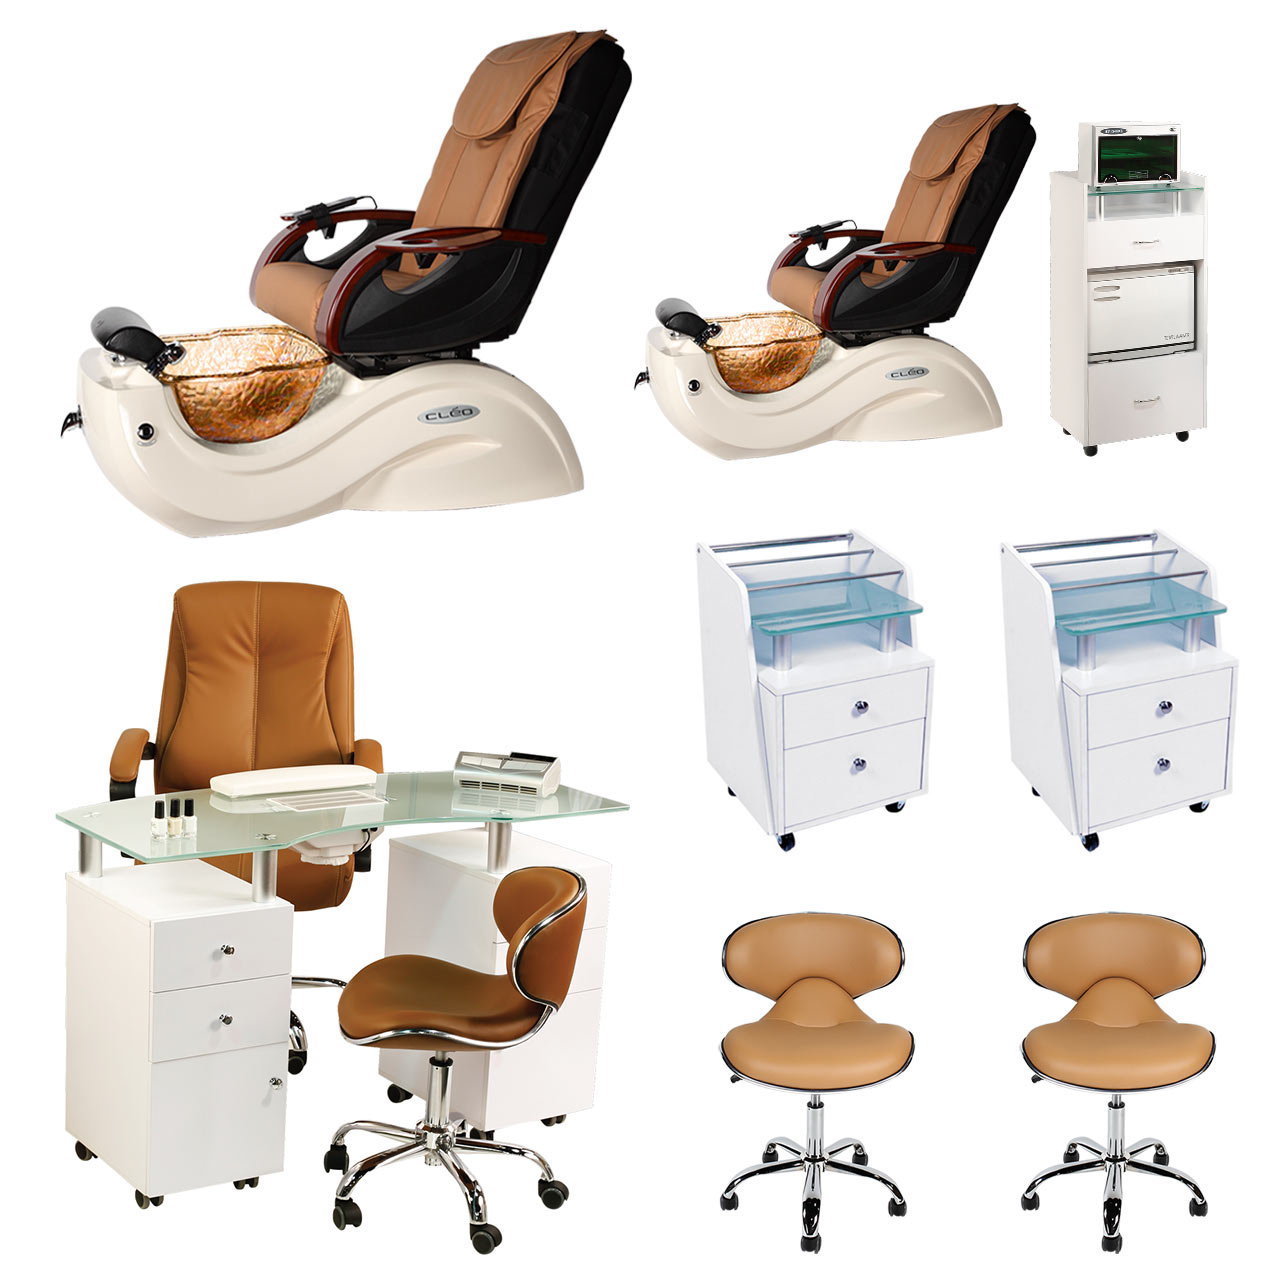 Mocha 2 Cleo GX Nail Salon Furniture Package & Manicure Station  main product image